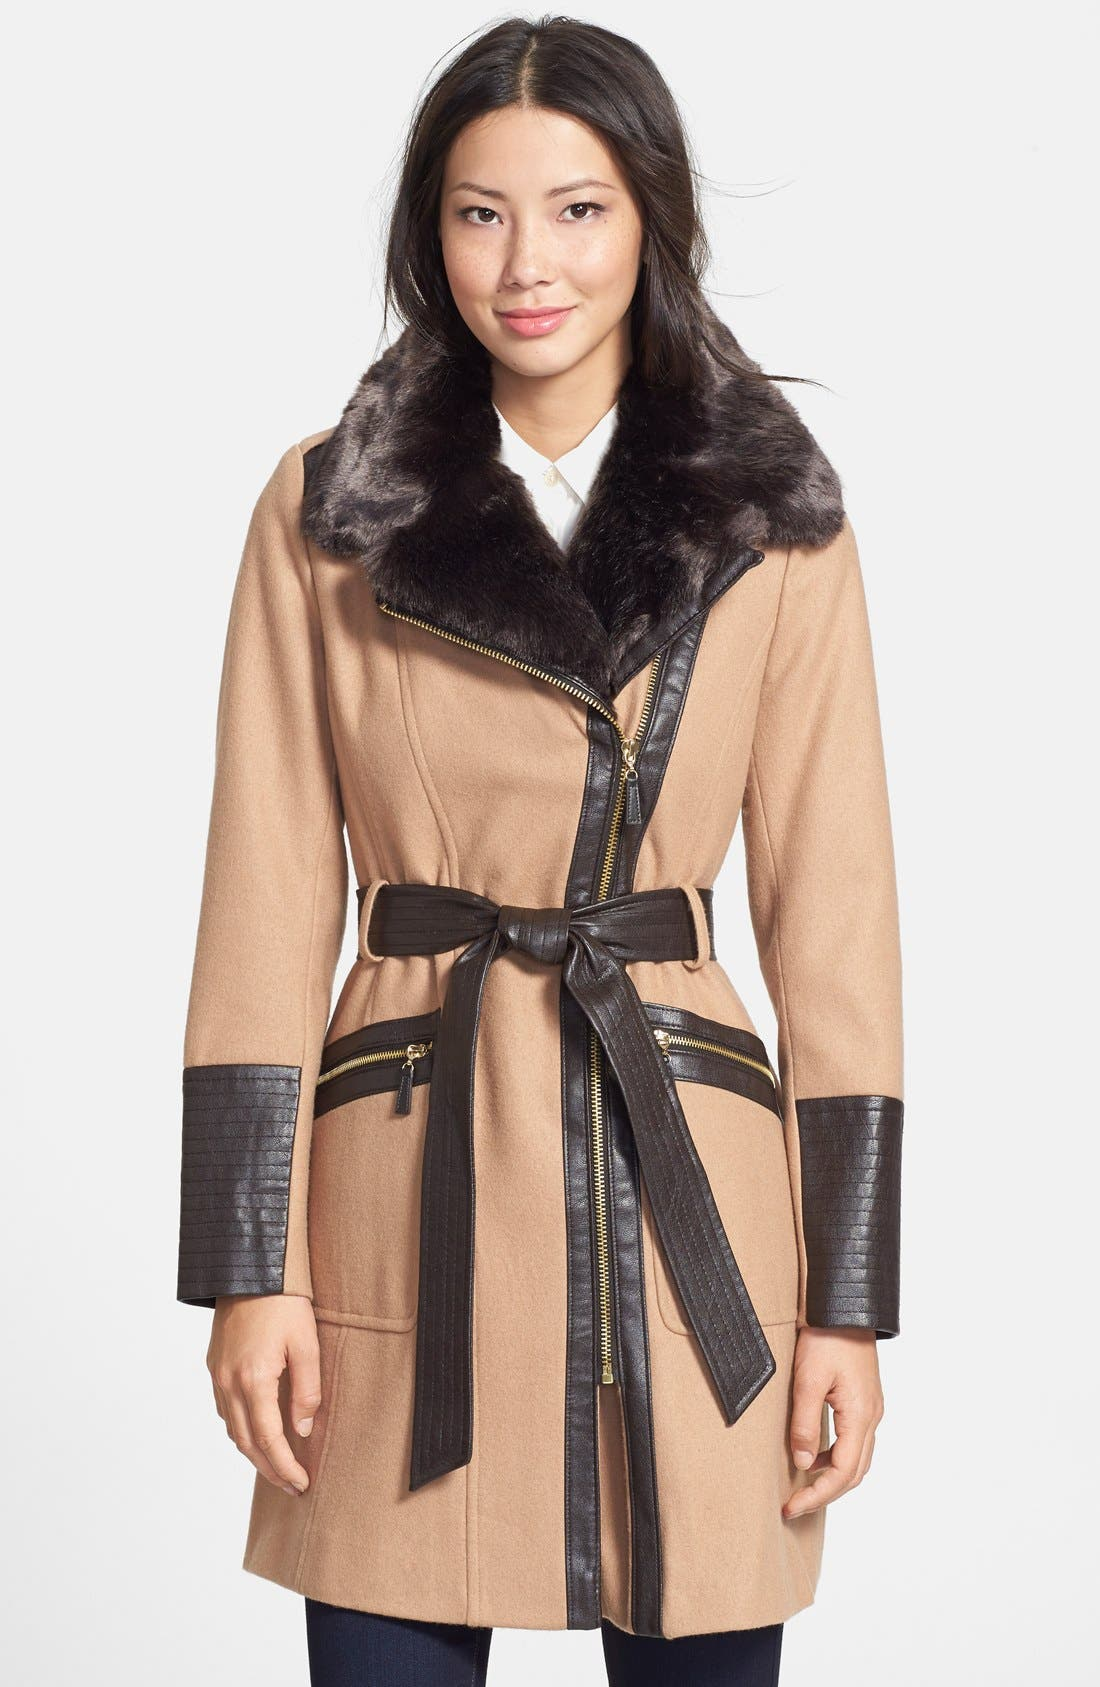 Alternate Image 1 Selected - Via Spiga Faux Fur & Faux Leather Trim Asymmetrical Belted Coat (Online Only)